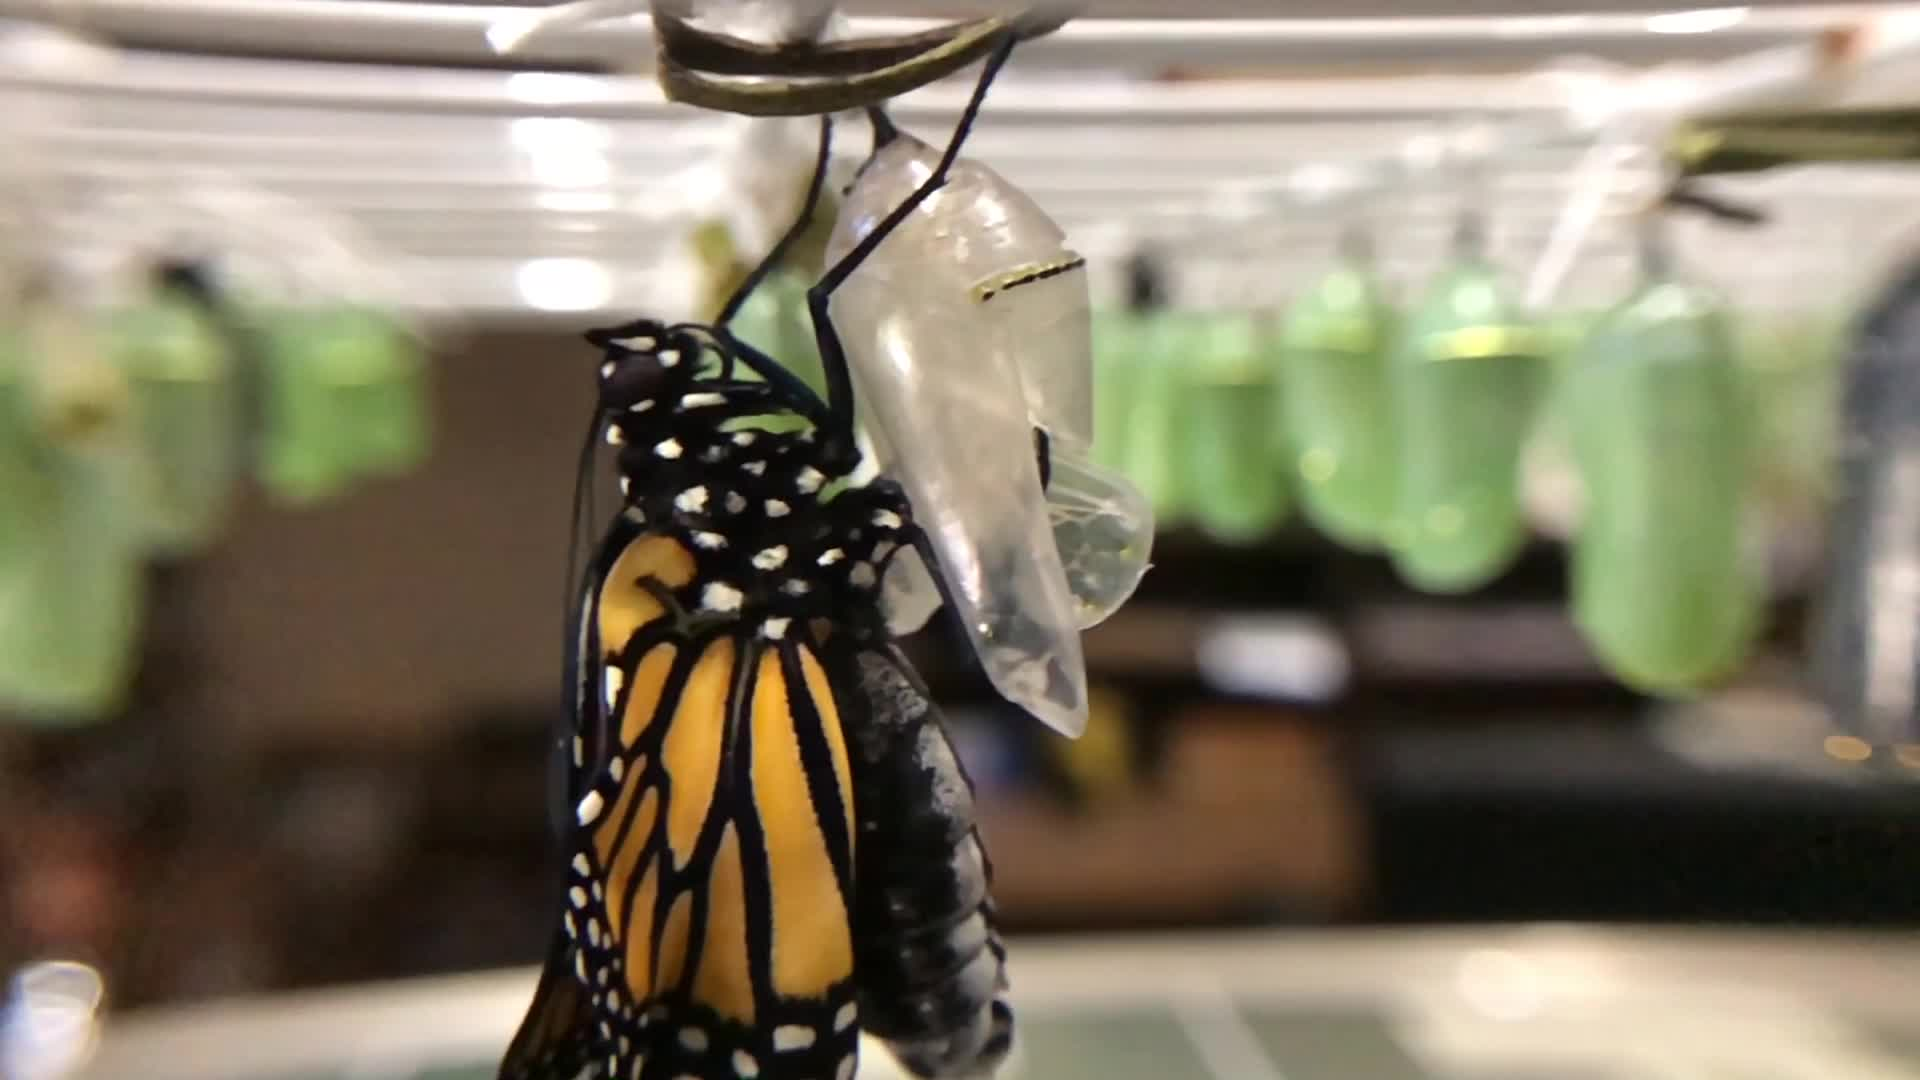 Coming out of their shells, er um, chrysalis | NBC4 WCMH-TV